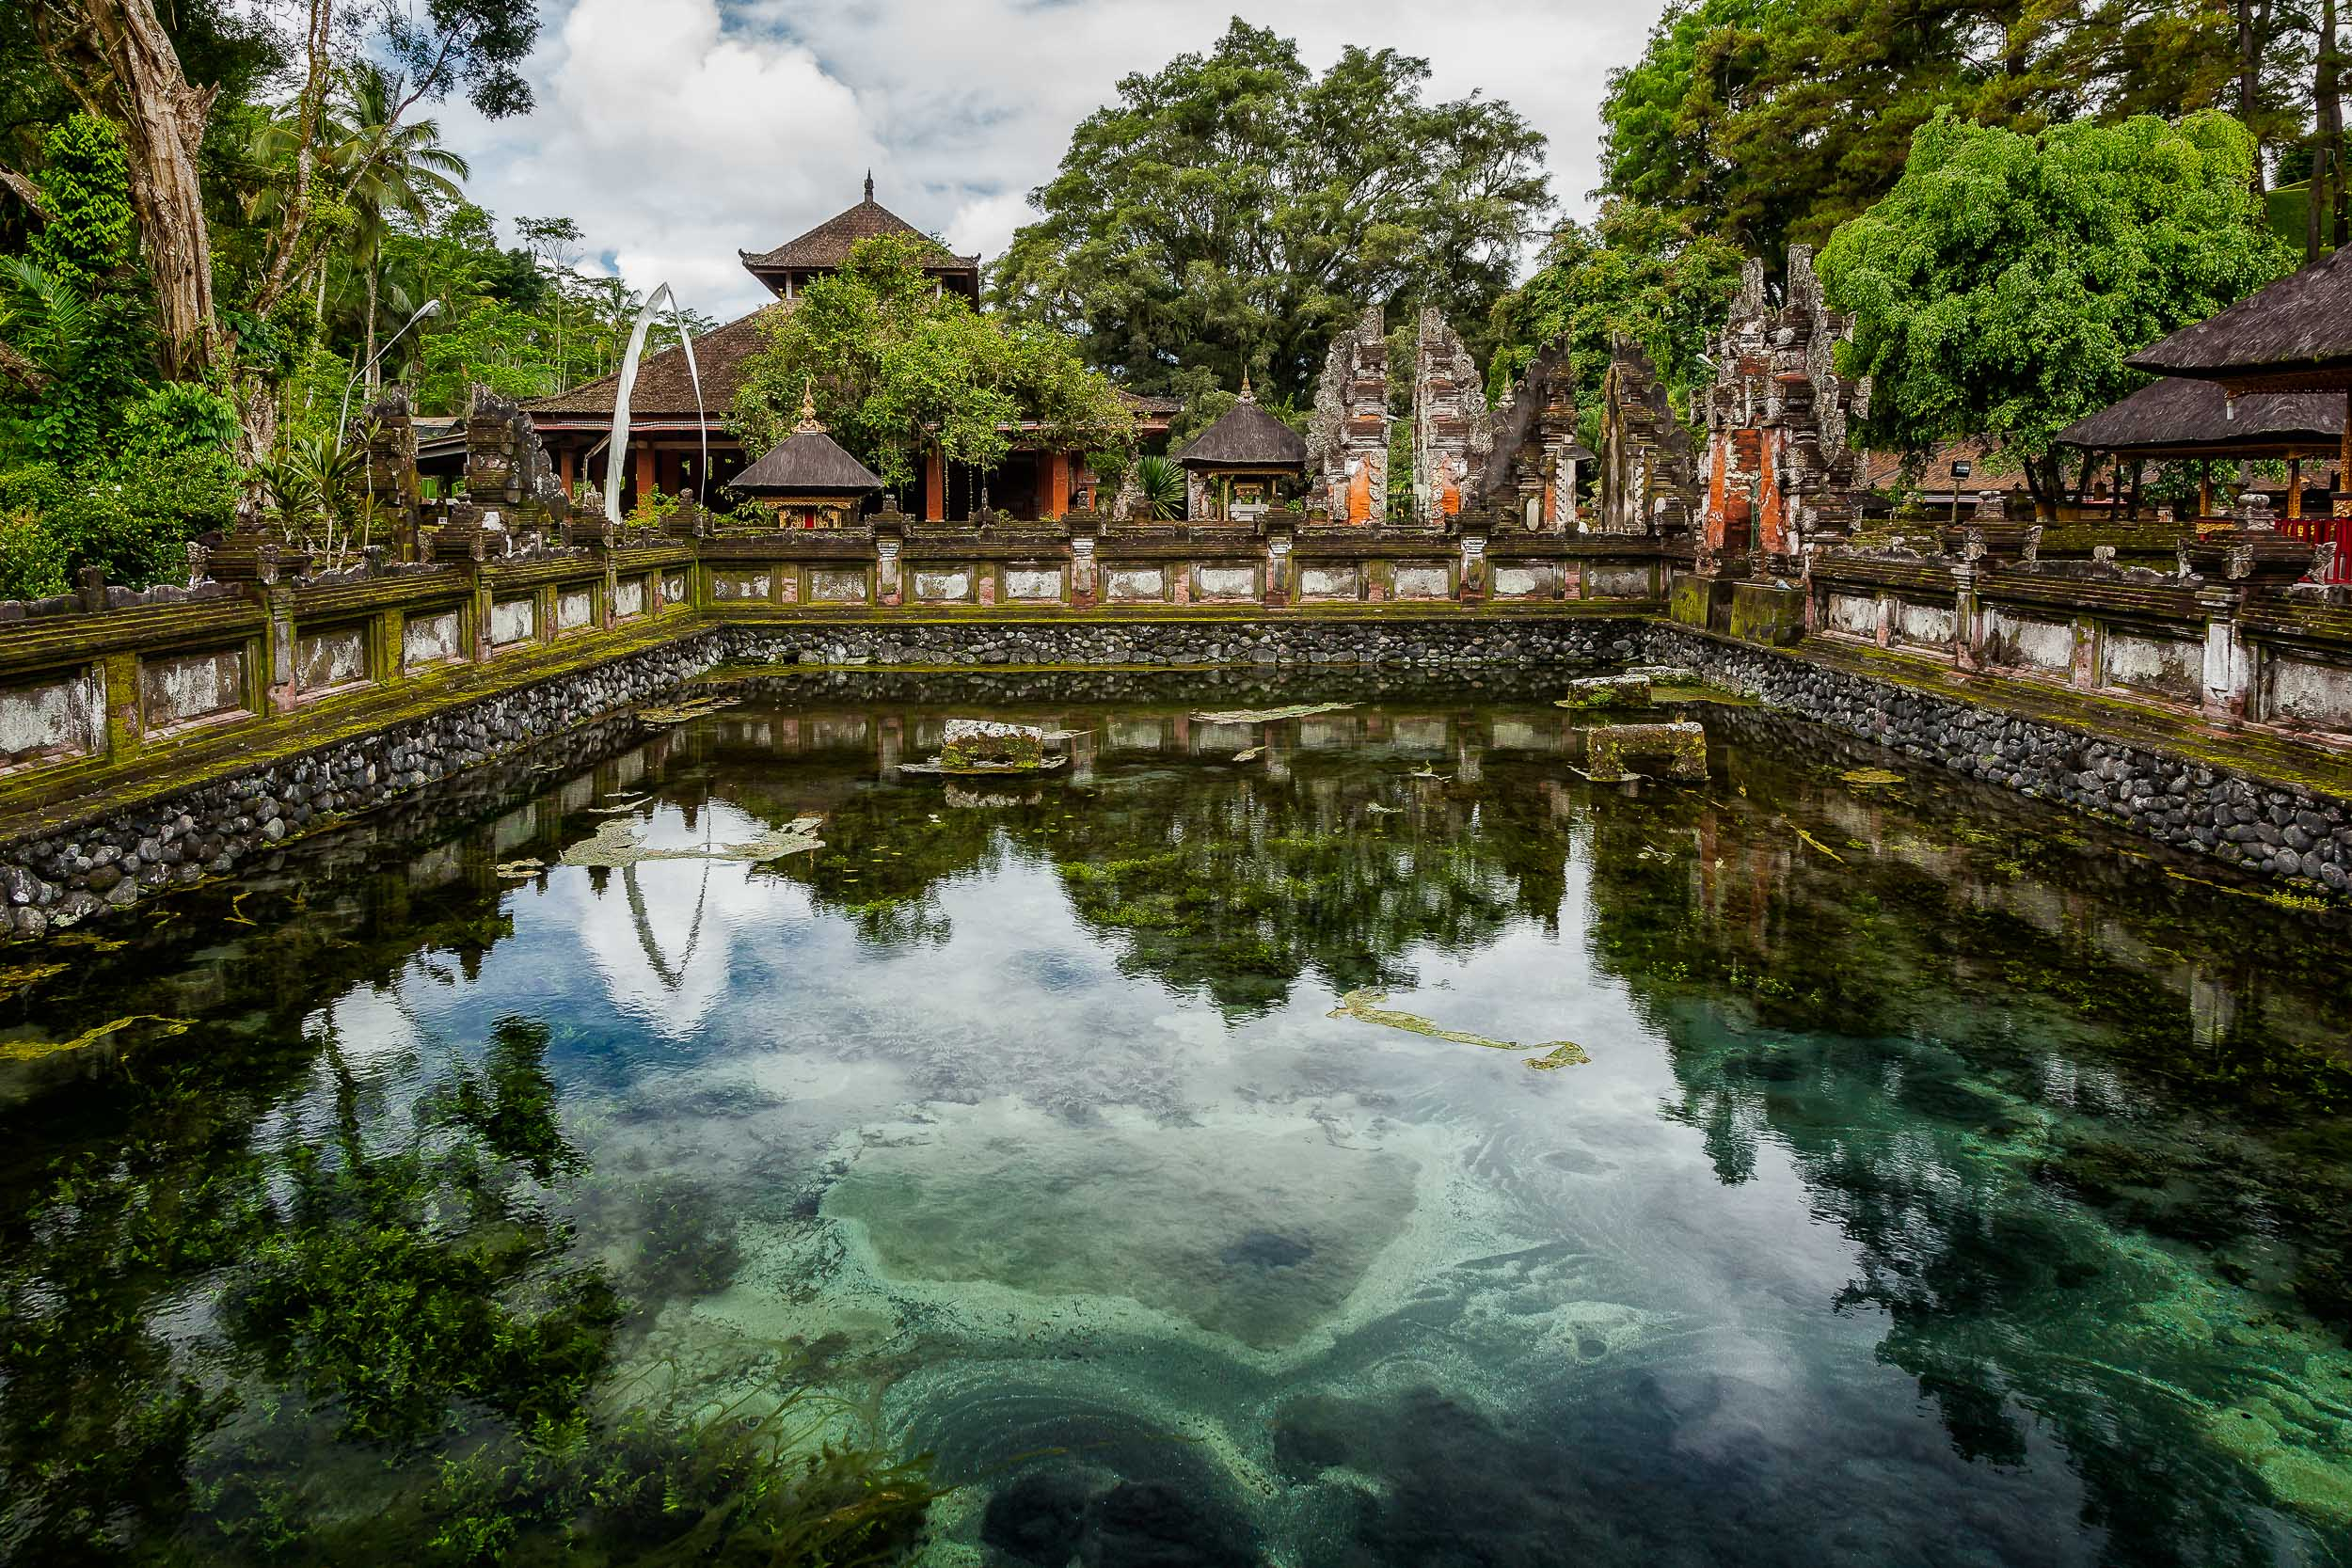 The color of the slime in a stagnant pool produces  harmony  with the surrounding trees and a vivid contrast with the predominantly orange color of the walls in a  Hindu temple in Bali, Indonesia . Beauty is everywhere, it's all a matter of perspective.